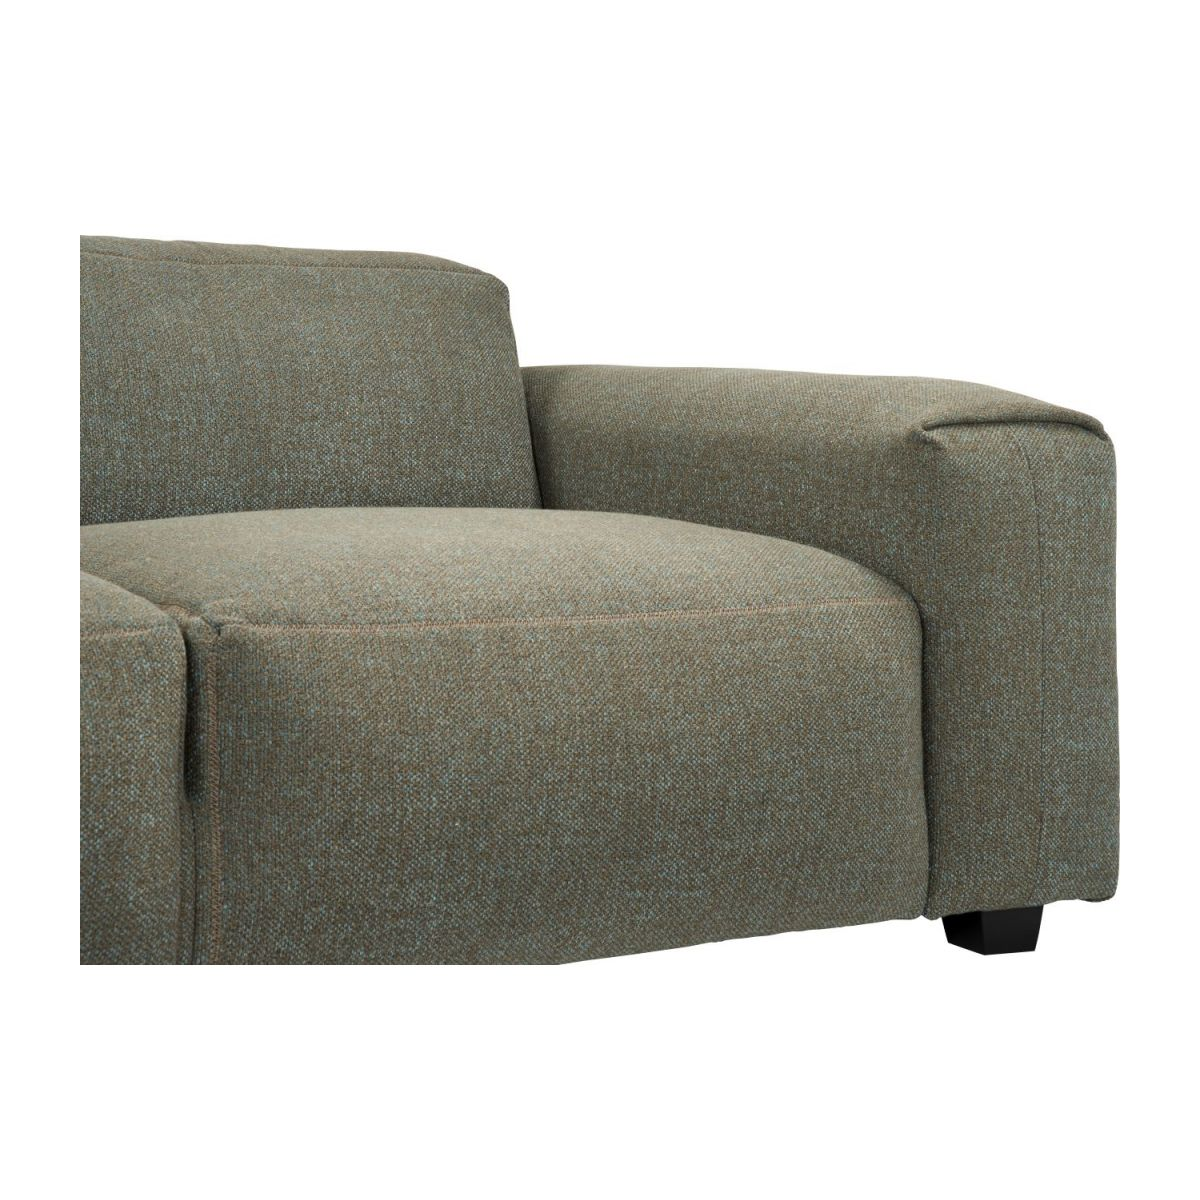 4 seater sofa in Lecce fabric, slade grey n°5